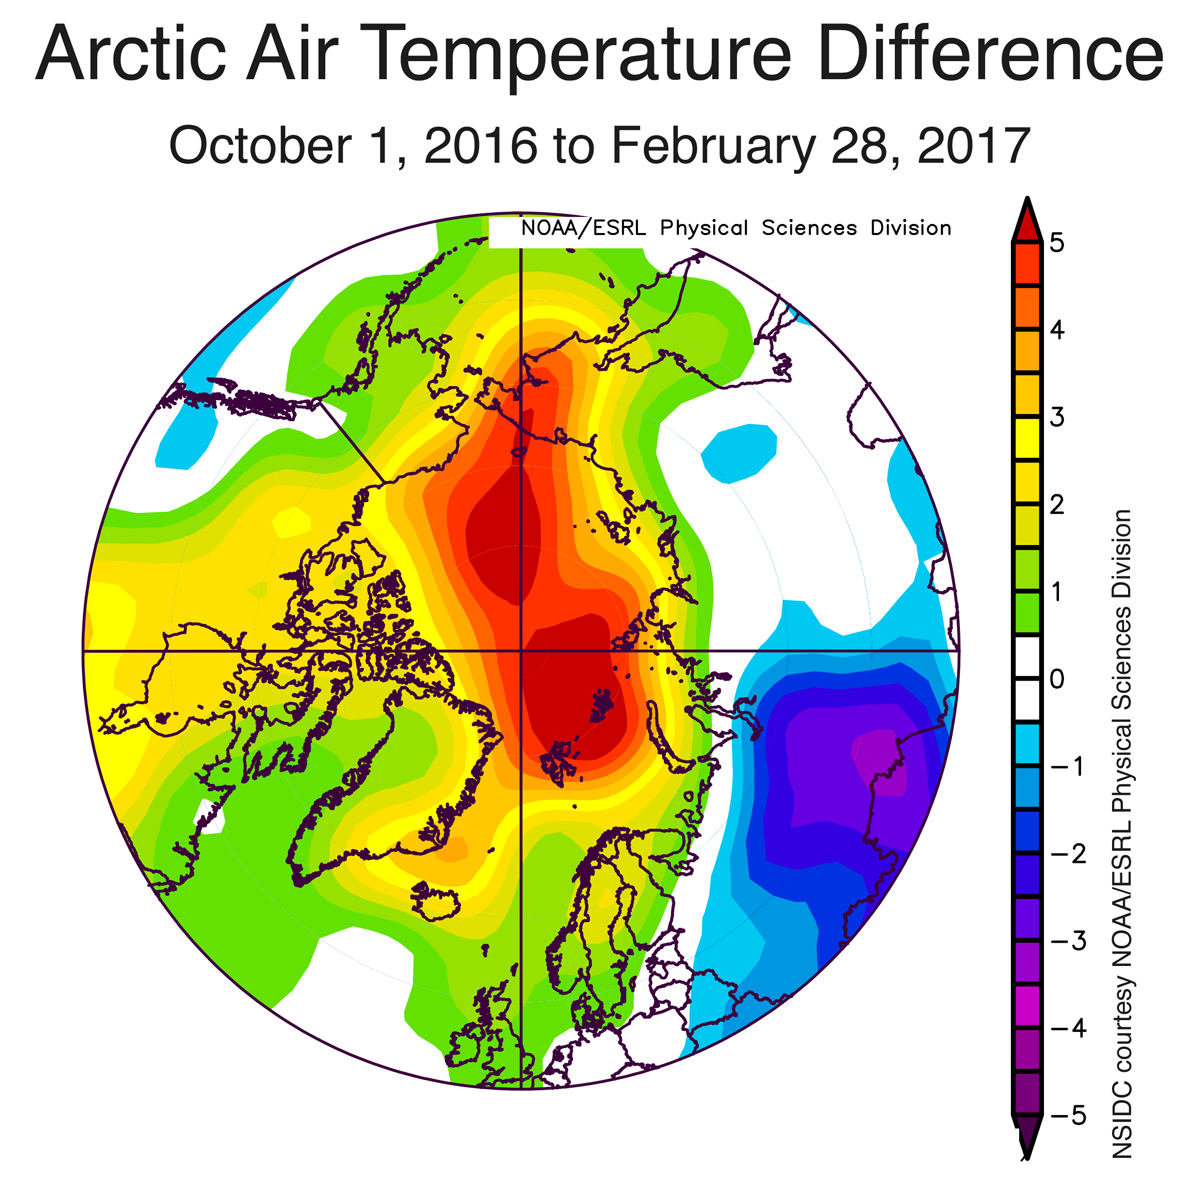 Arctic Sea Ice News and Analysis | Sea ice data updated daily with one-day lag